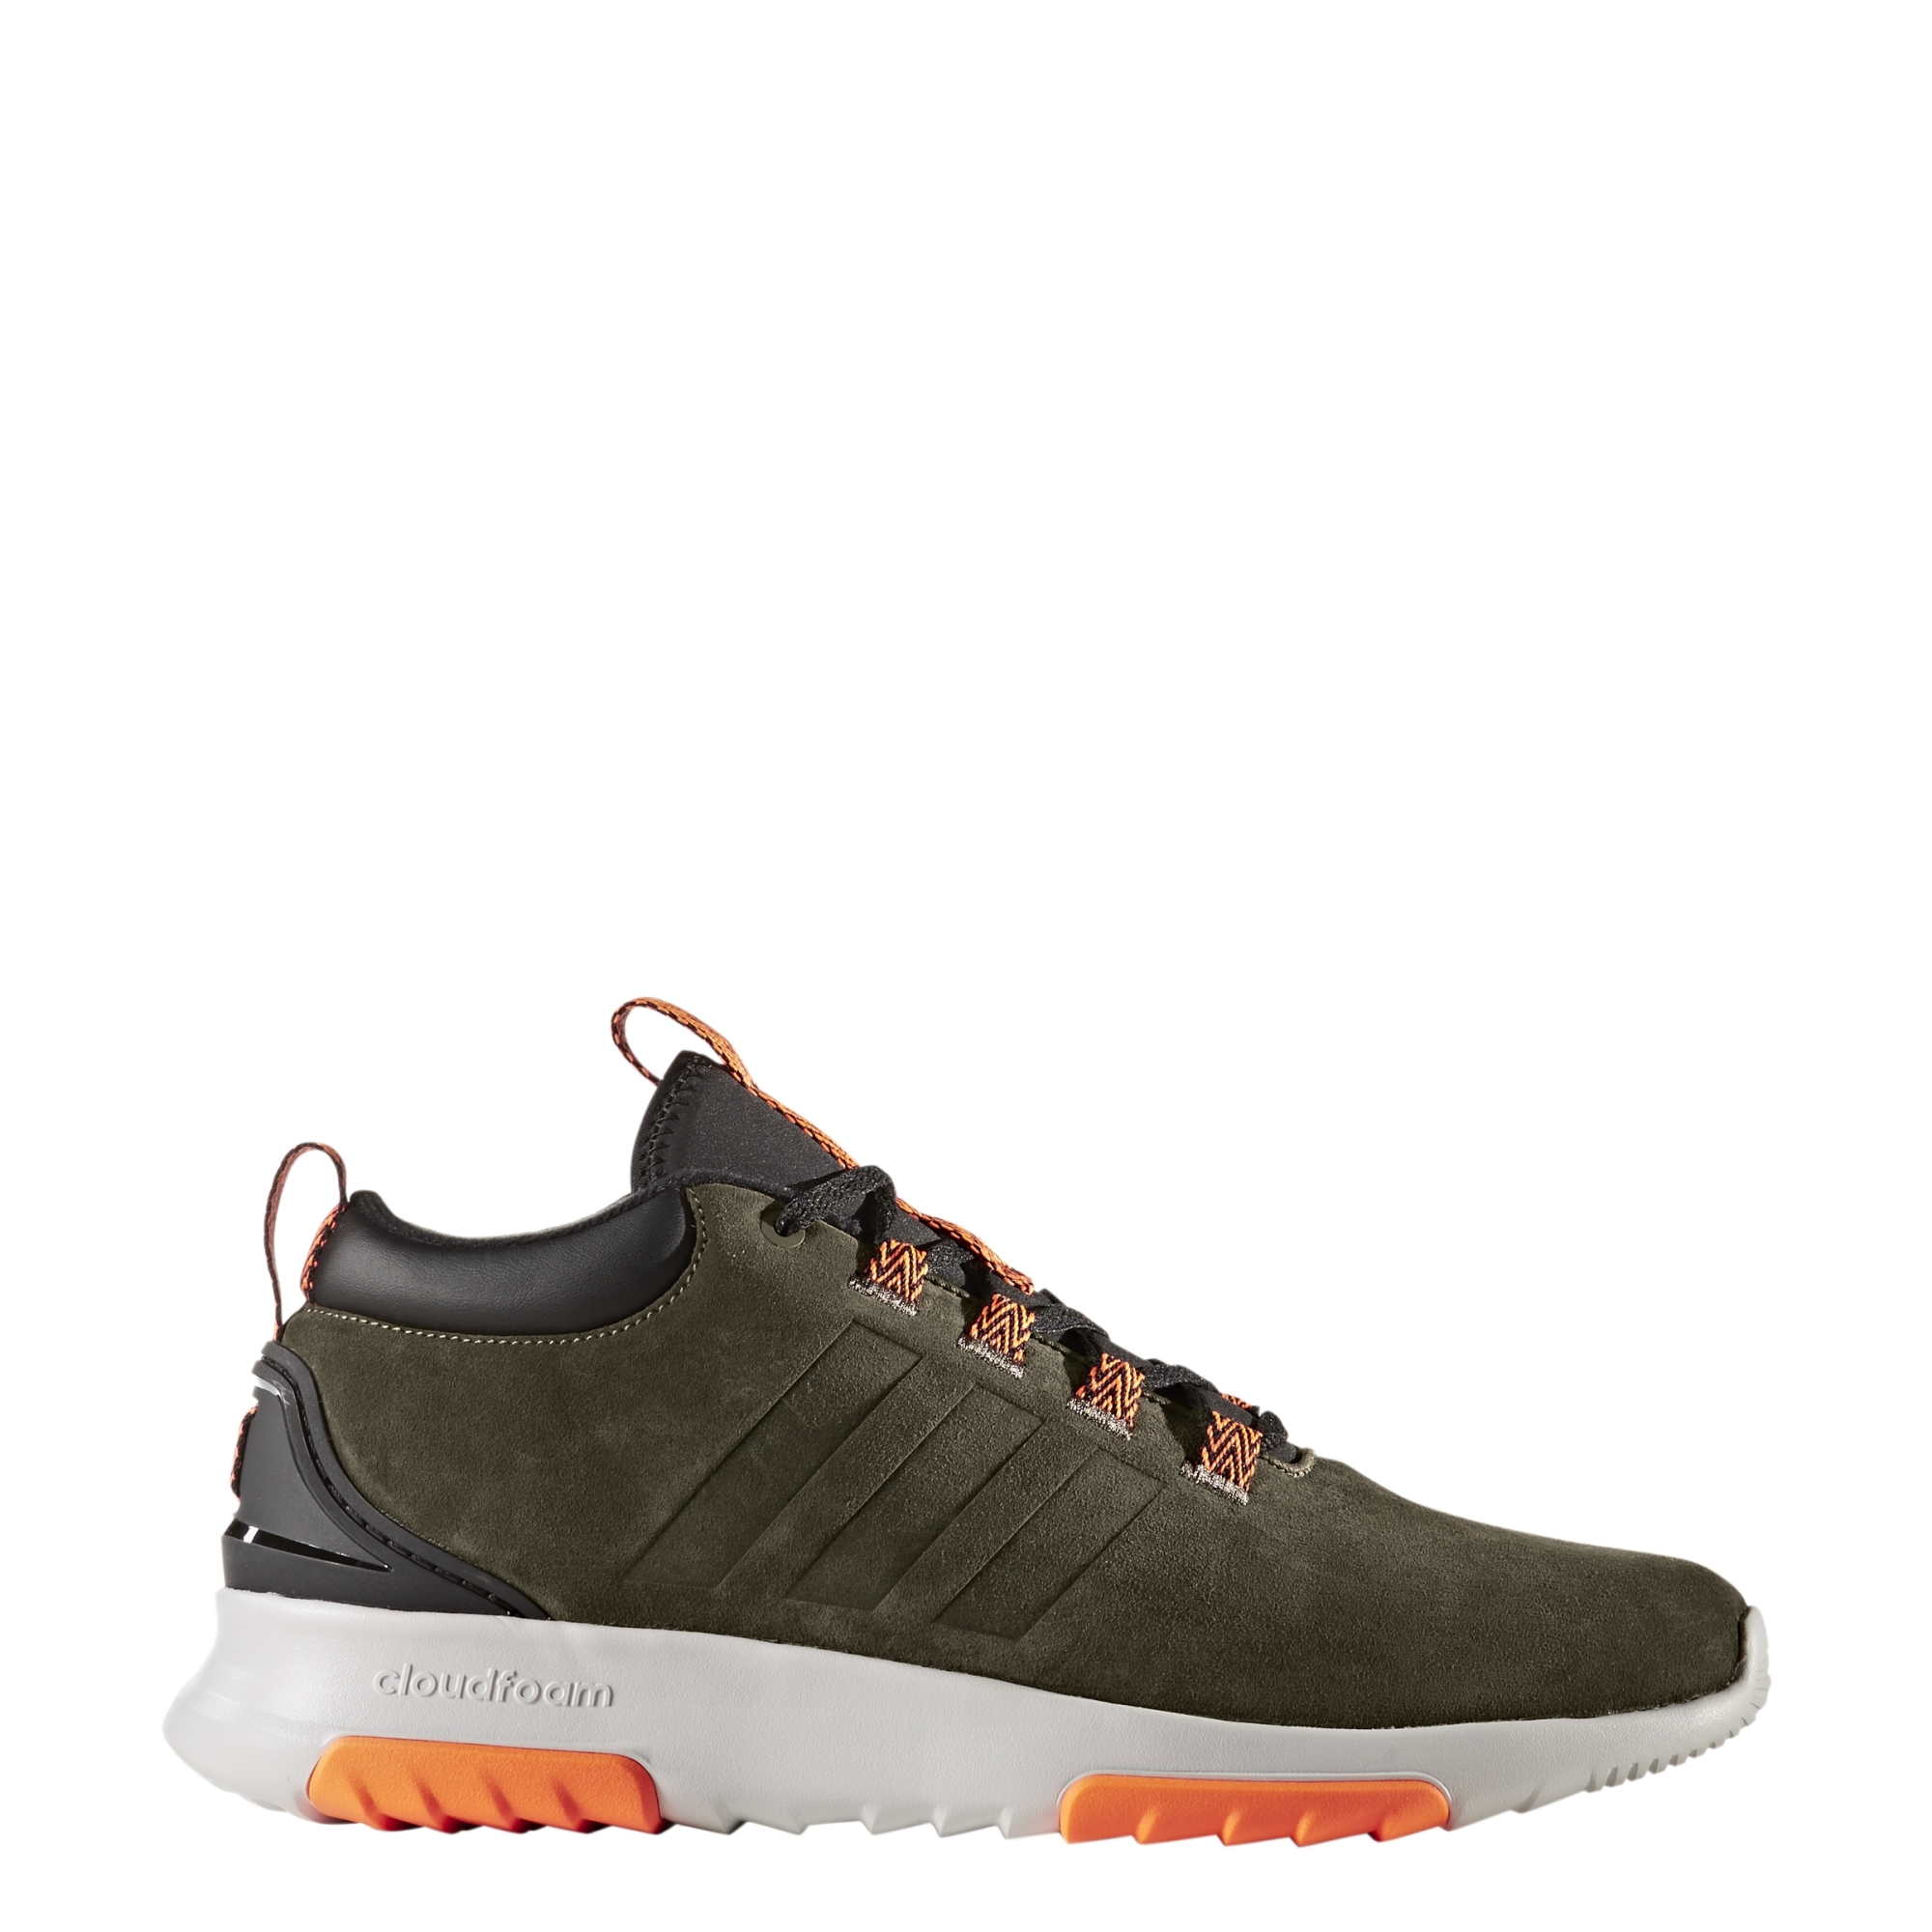 adidas CLOUDFOAM RACER WINTER MID topánky